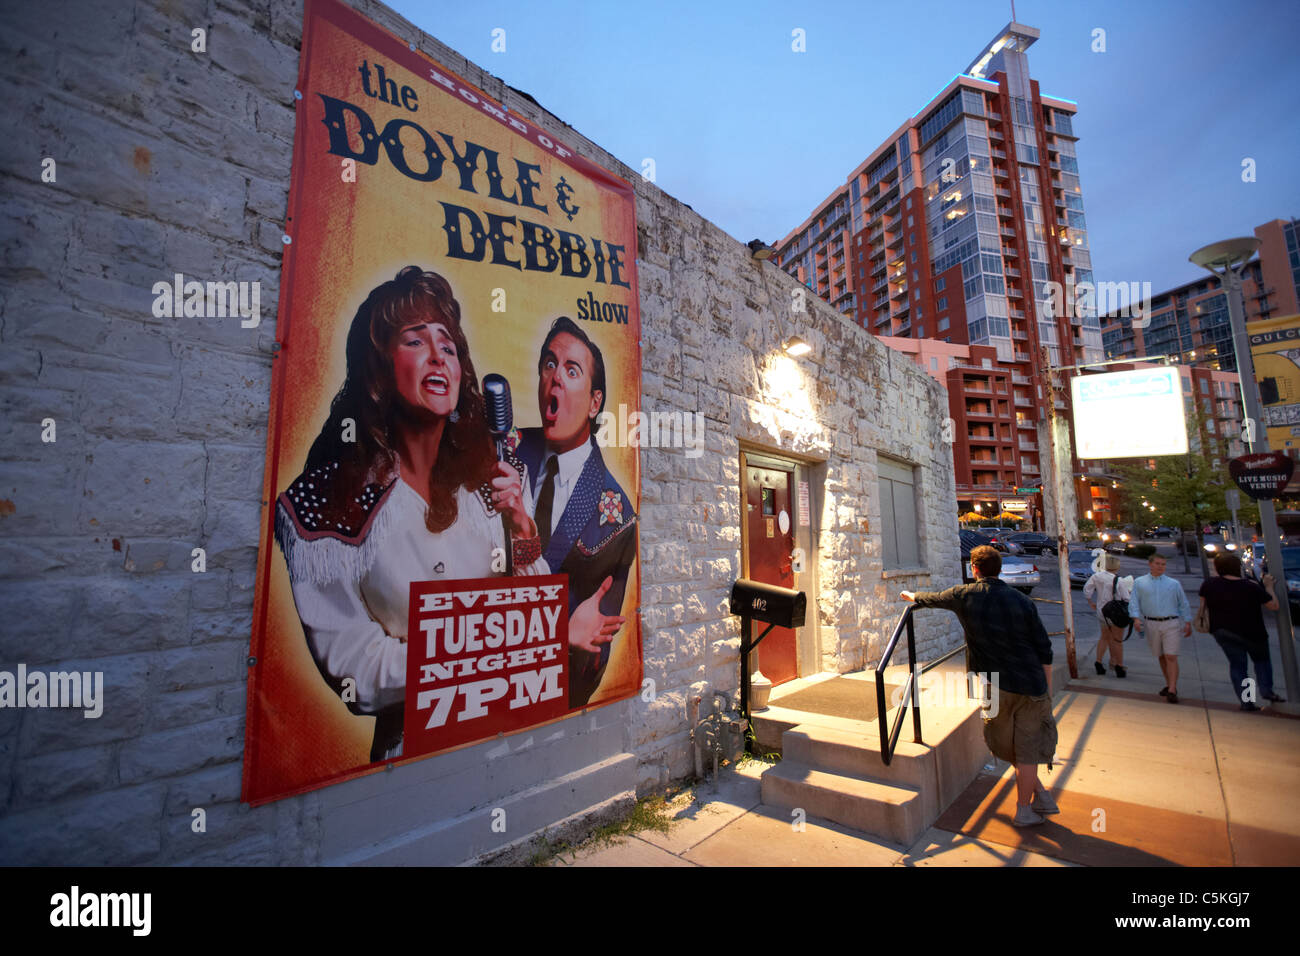 the doyle and debbie show poster at the station inn nashville tennessee usa - Stock Image